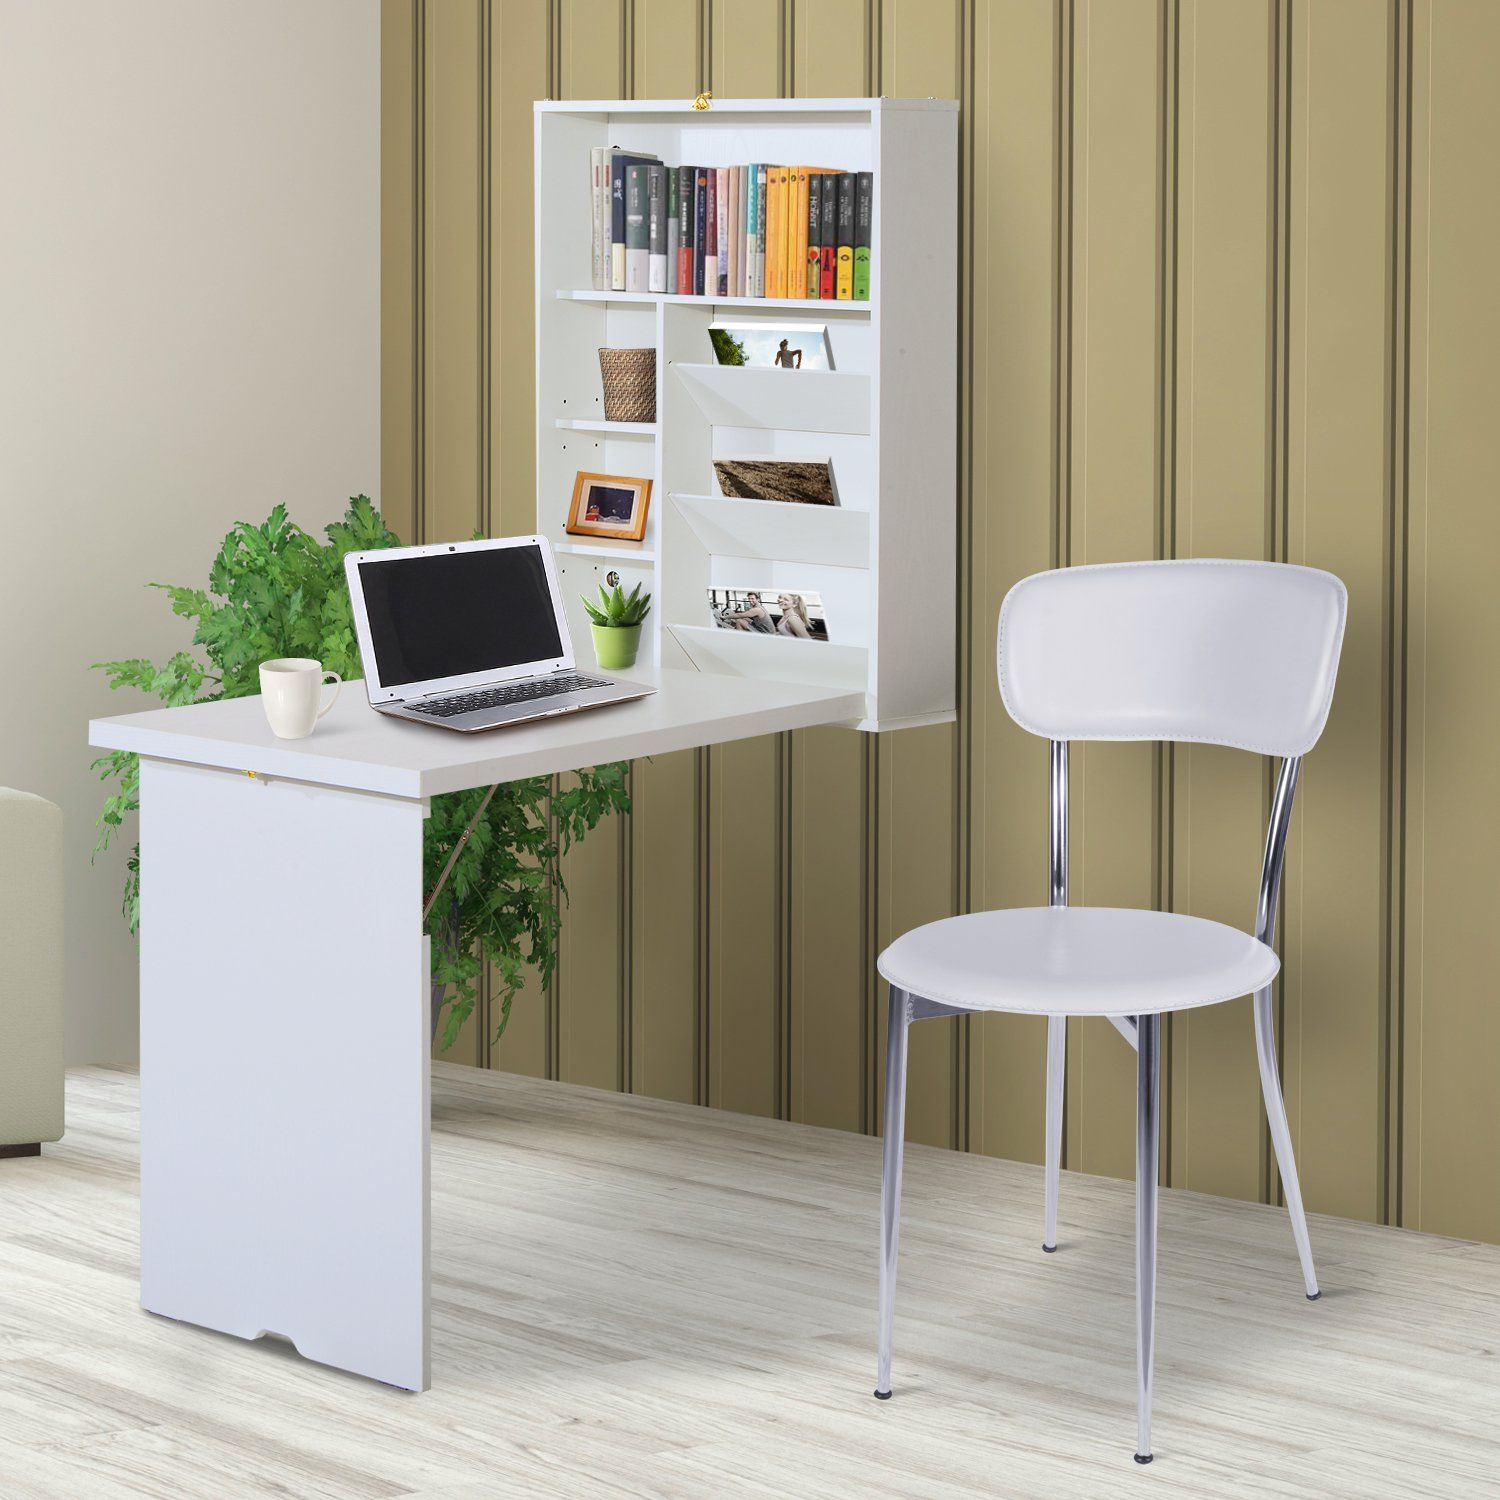 Homcom Wooden Fold Out Convertible Wall Mount Floating Desk White Writing Tables Aosom Convertible Desk Floating Desk Fold Down Desk